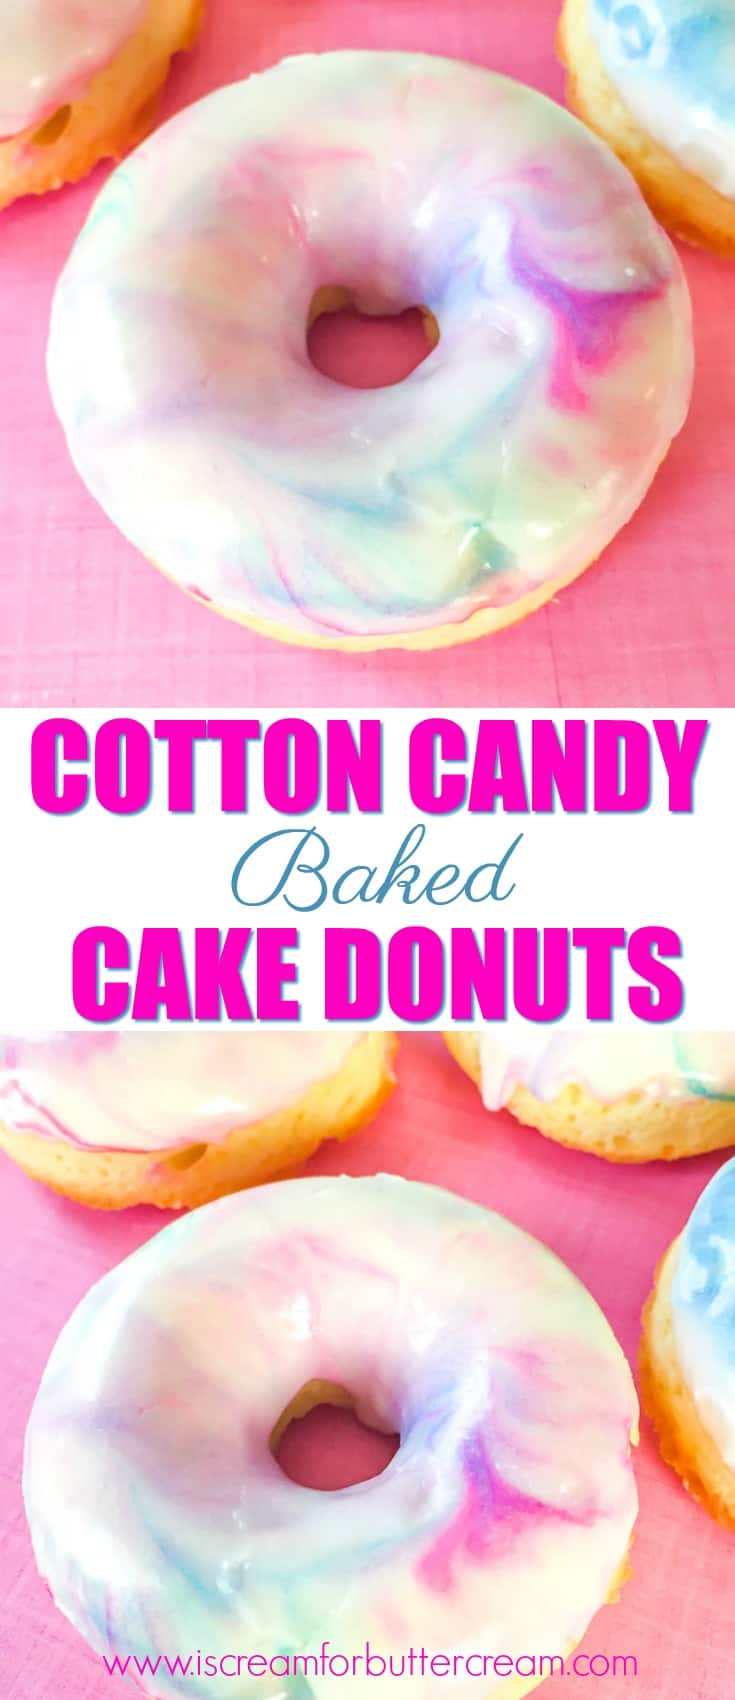 Cotton Candy Baked Cake Donuts Pinterest Graphic